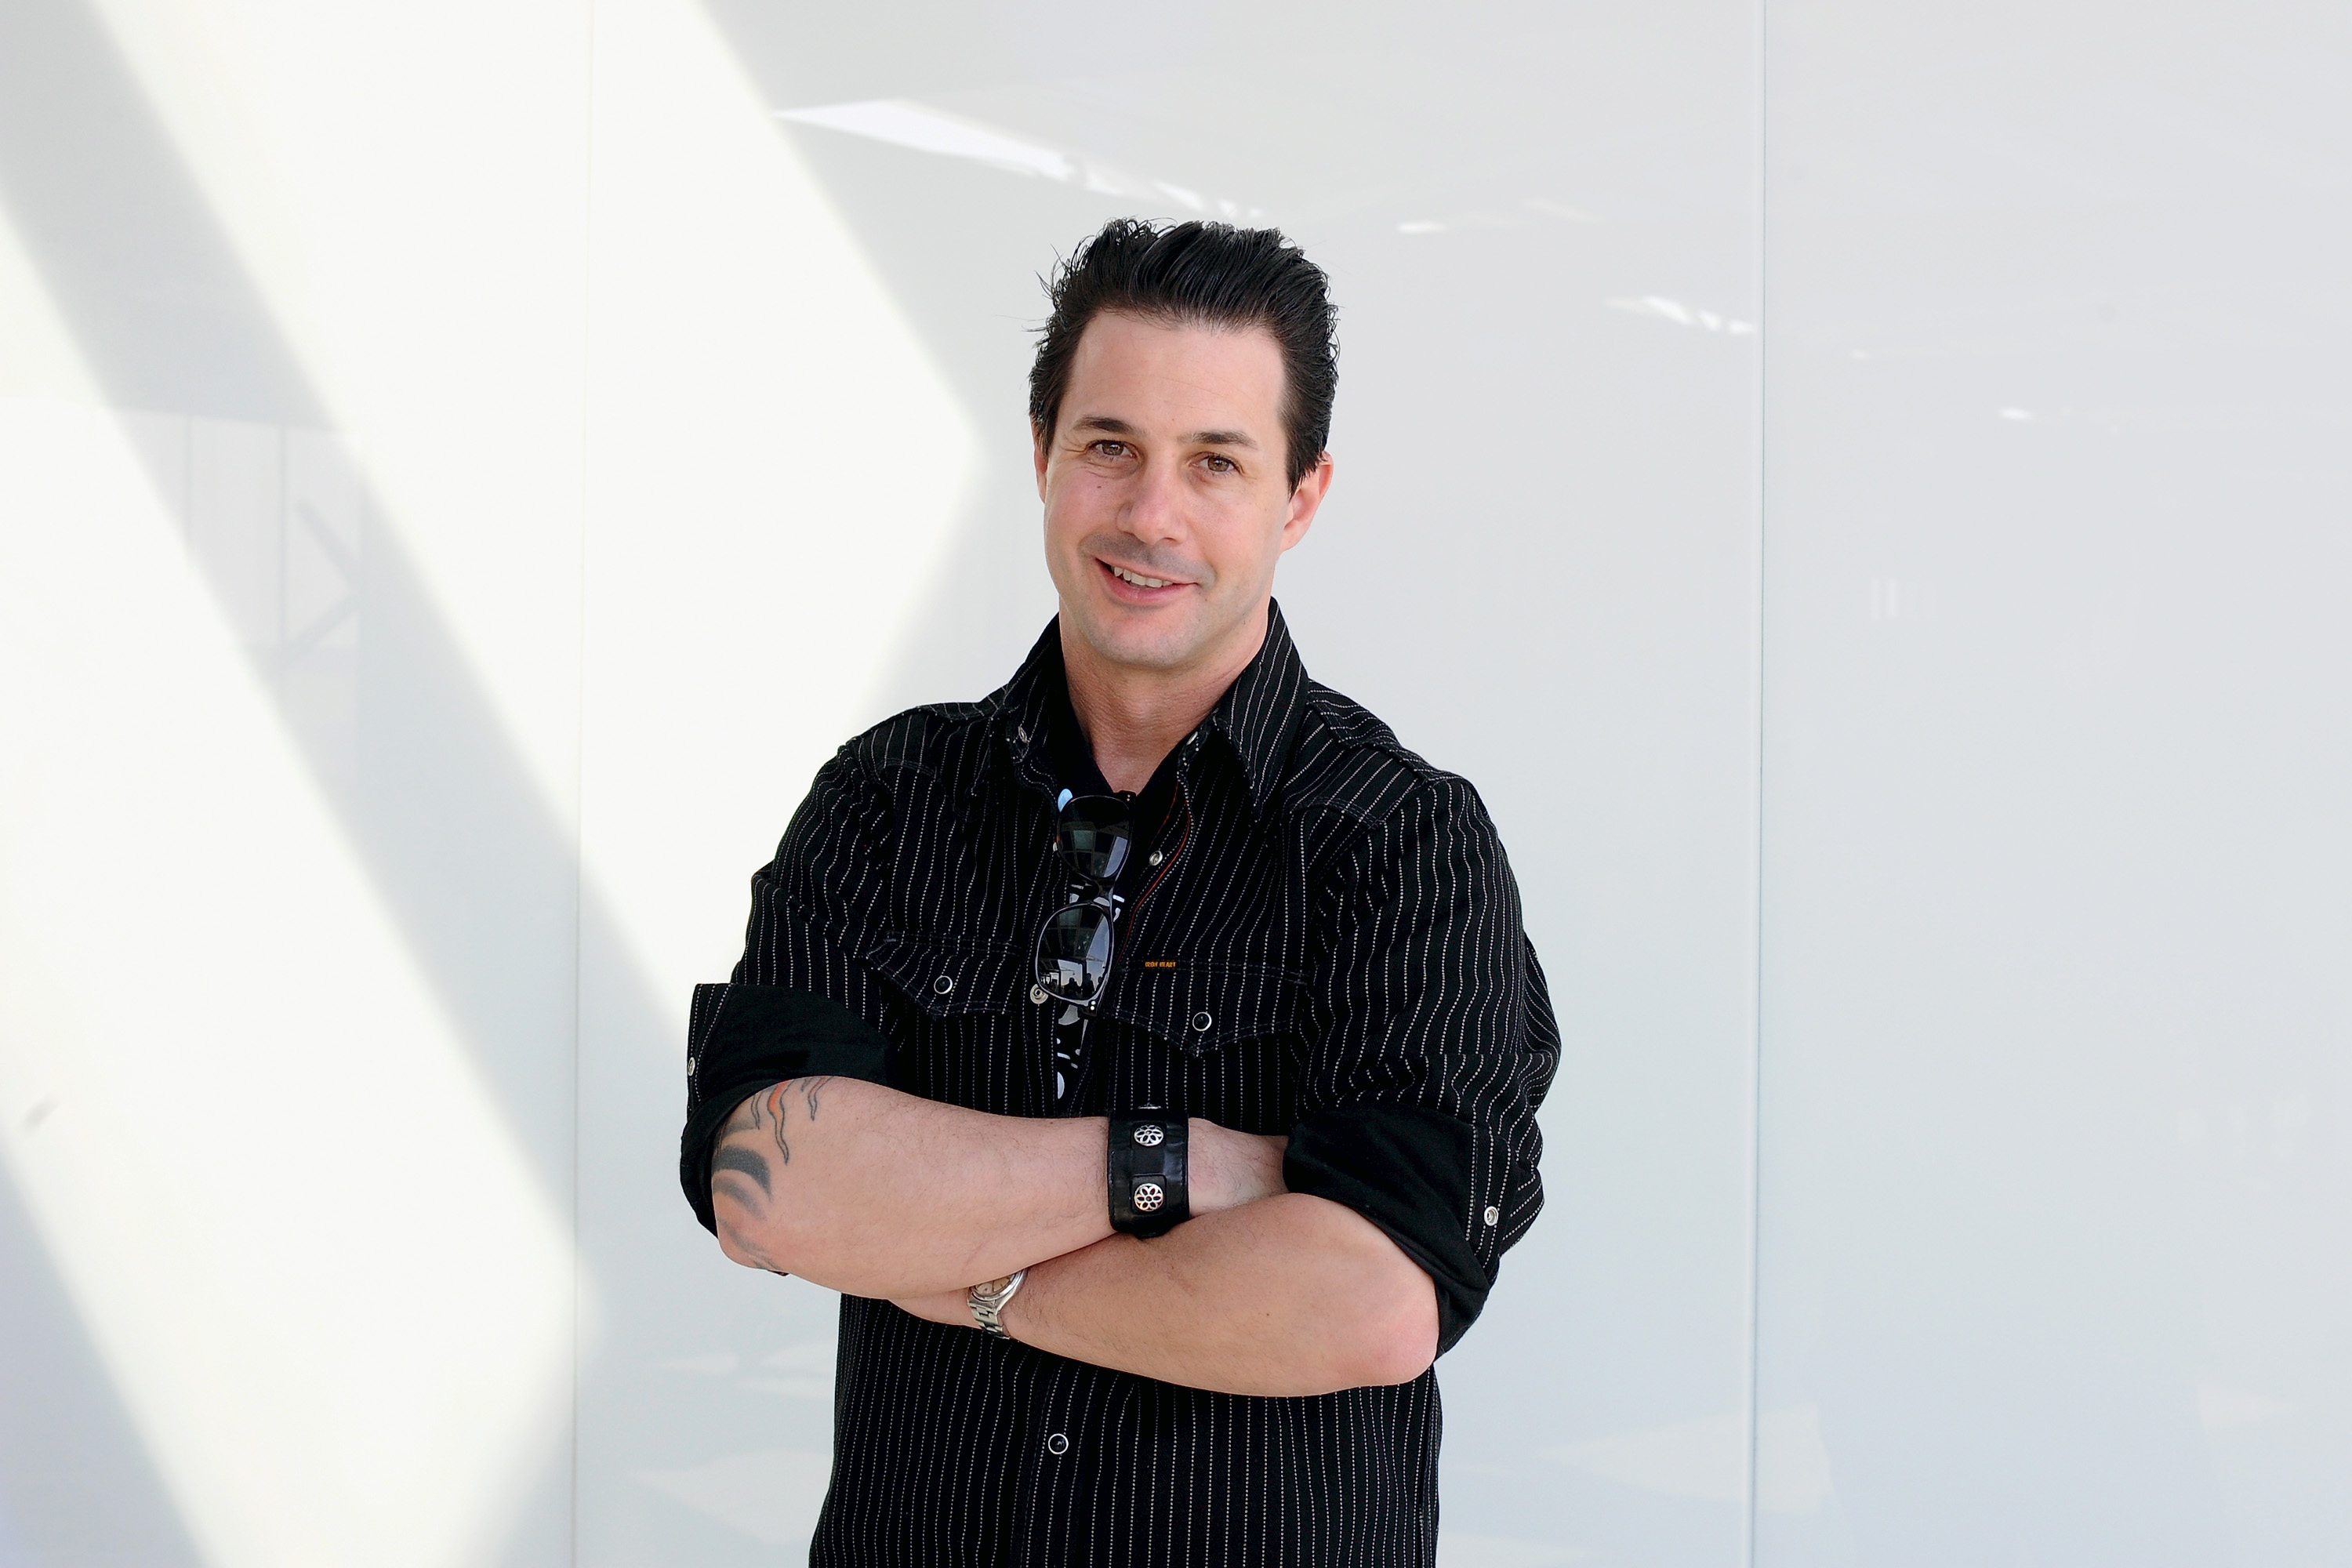 Pastry Chef Johnny Iuzzini poses for a photo during Expo 2015 at Fiera Milano Rho on May 28, 2015 in Milan, Italy.